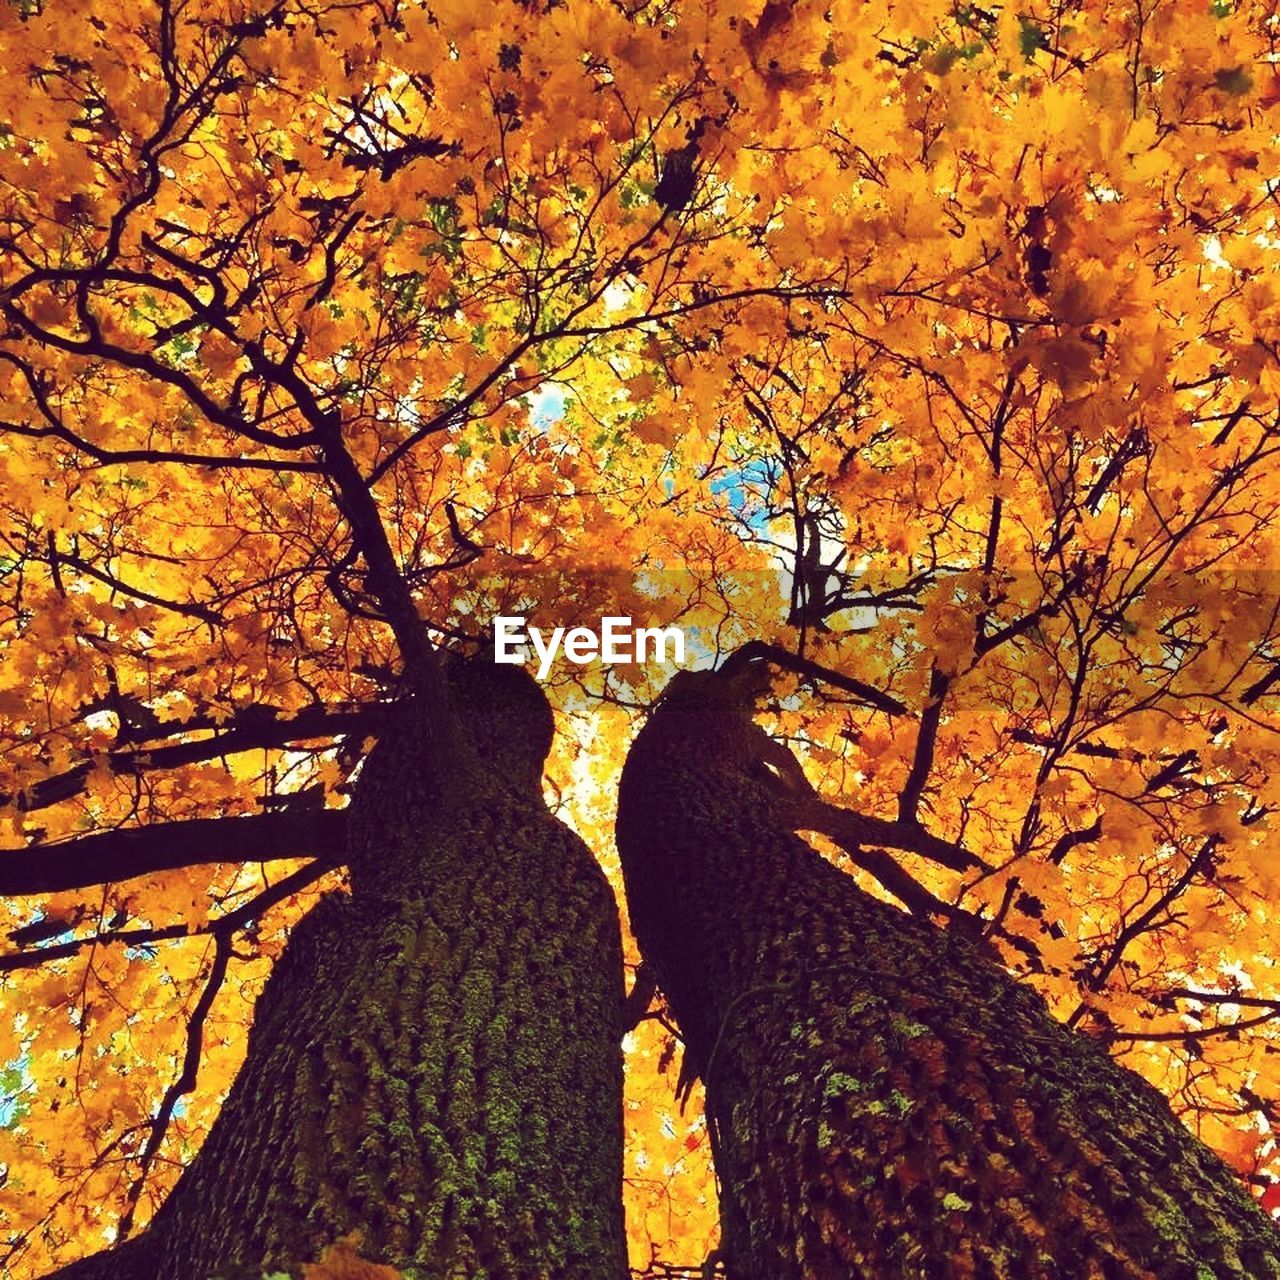 tree, autumn, nature, branch, beauty in nature, orange color, growth, leaf, change, tree trunk, day, outdoors, tranquility, no people, sunlight, scenics, low angle view, maple, sky